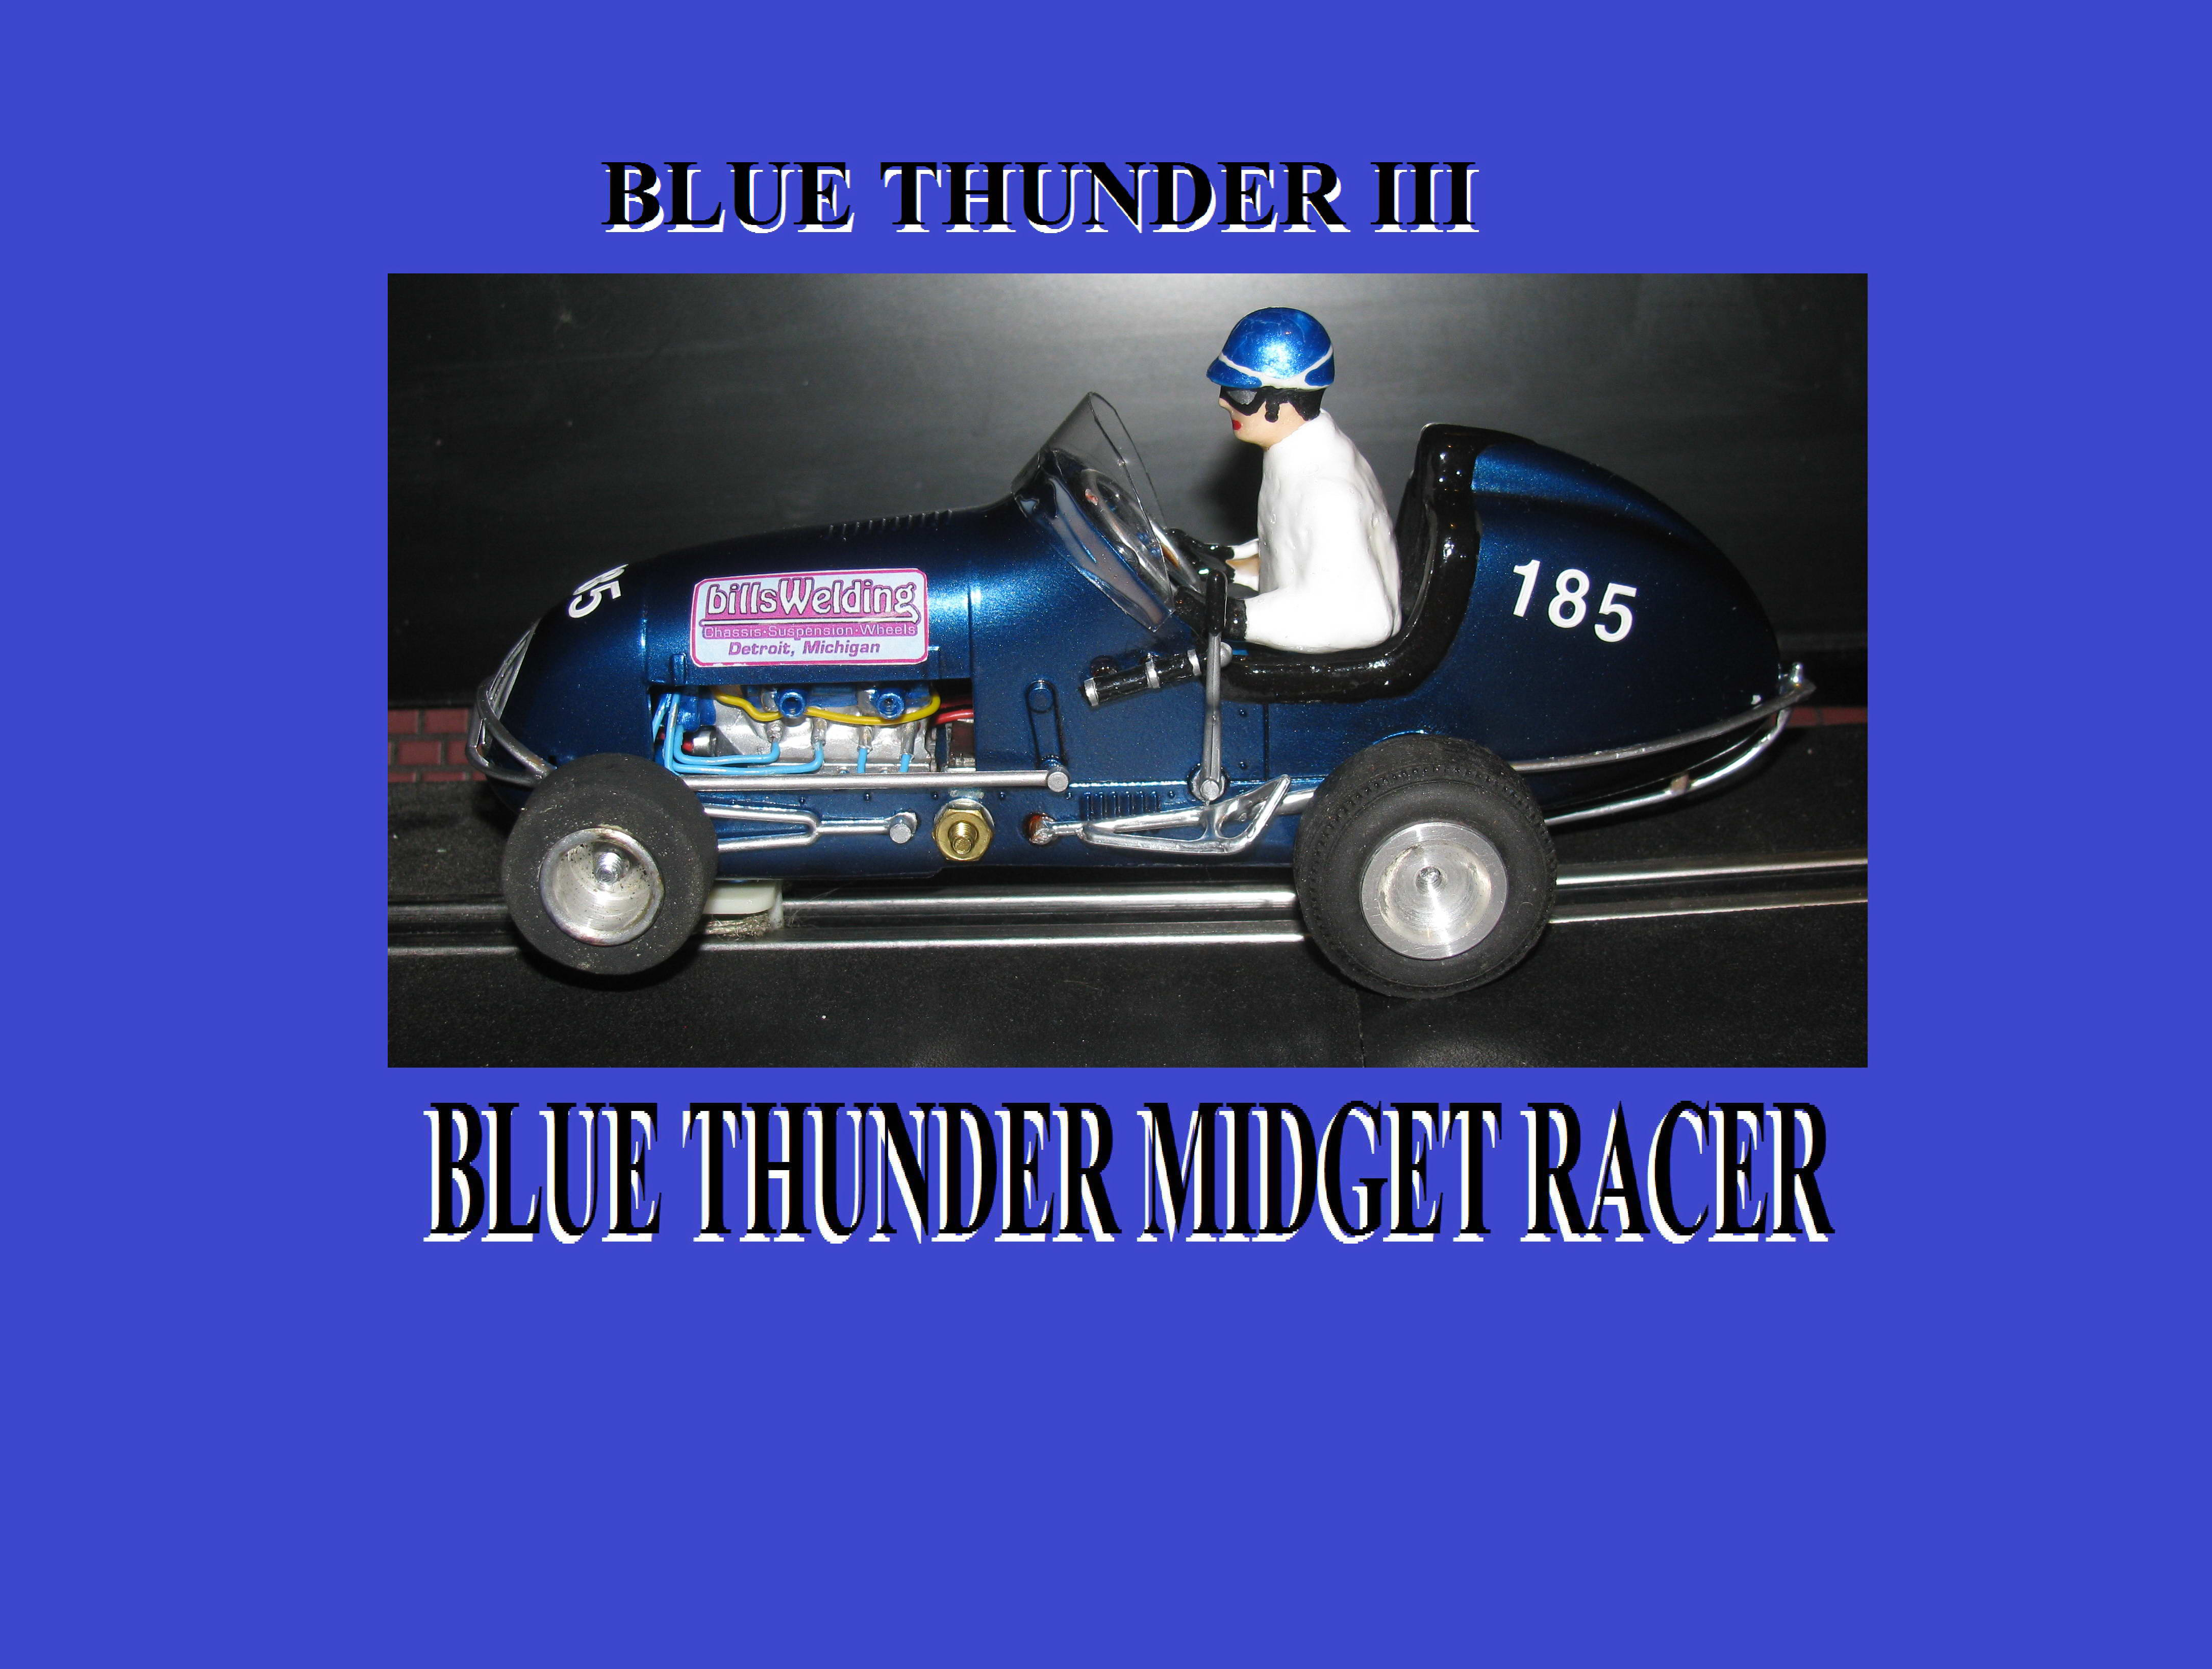 *SOLD* Midget Racer Blue Thunder III Monogram Racing Special Car 185